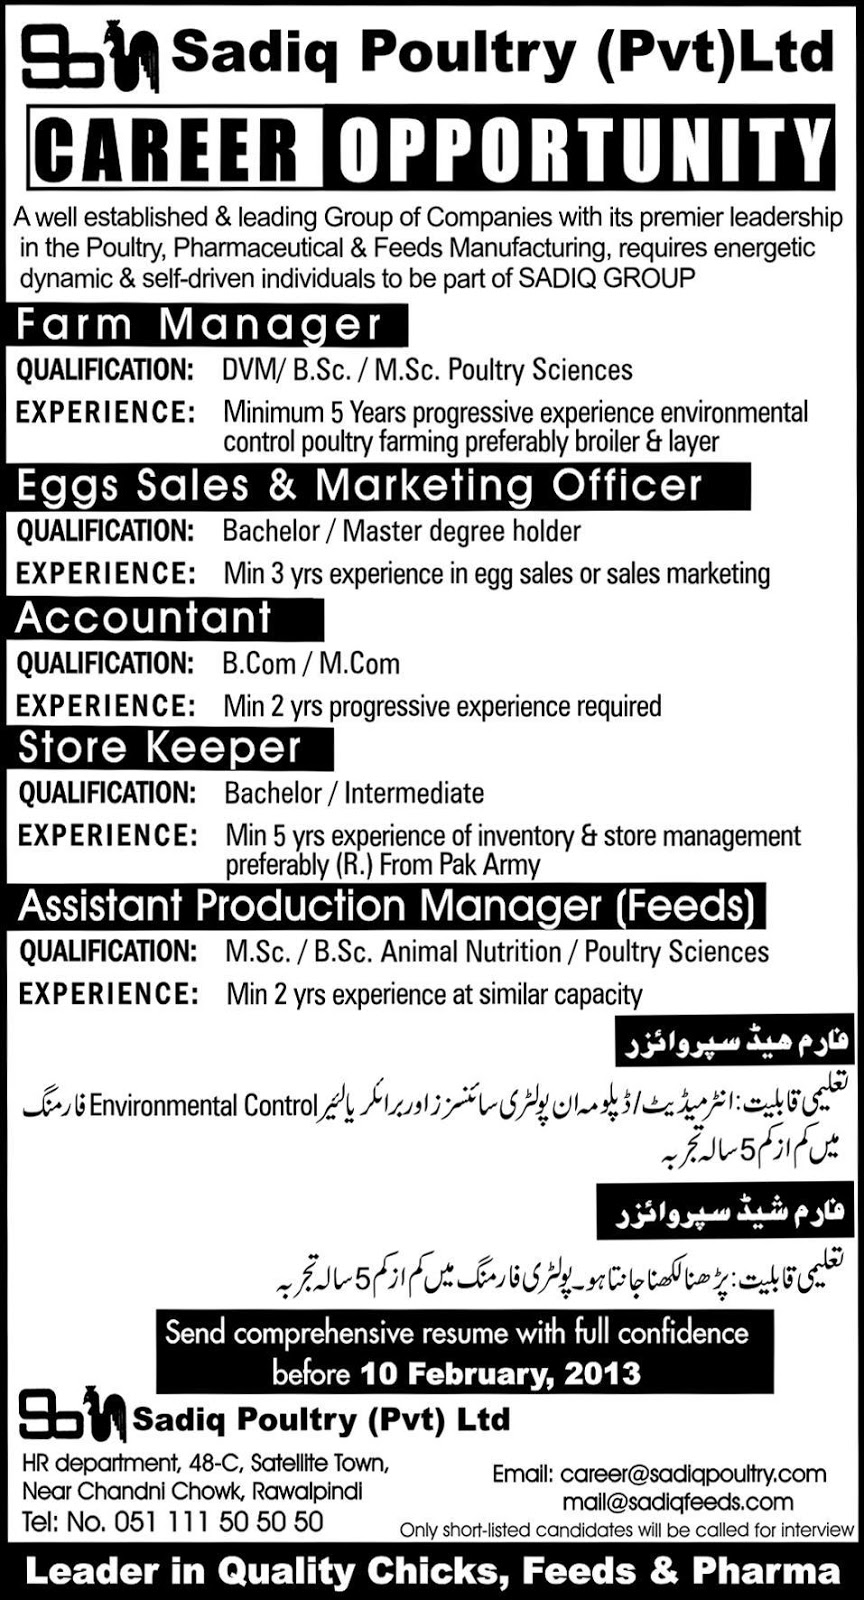 form manager job opportunity